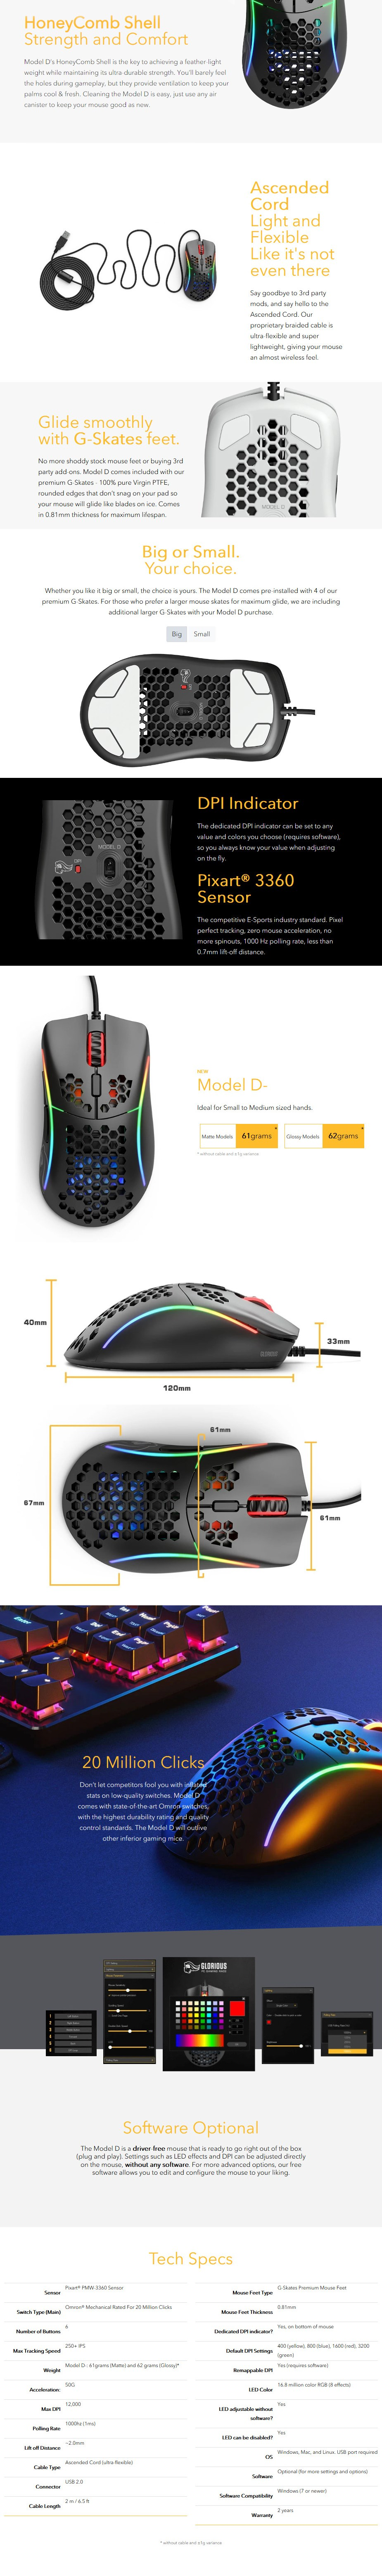 Glorious Model D- Gaming Mouse - Matte Black - Overview 1